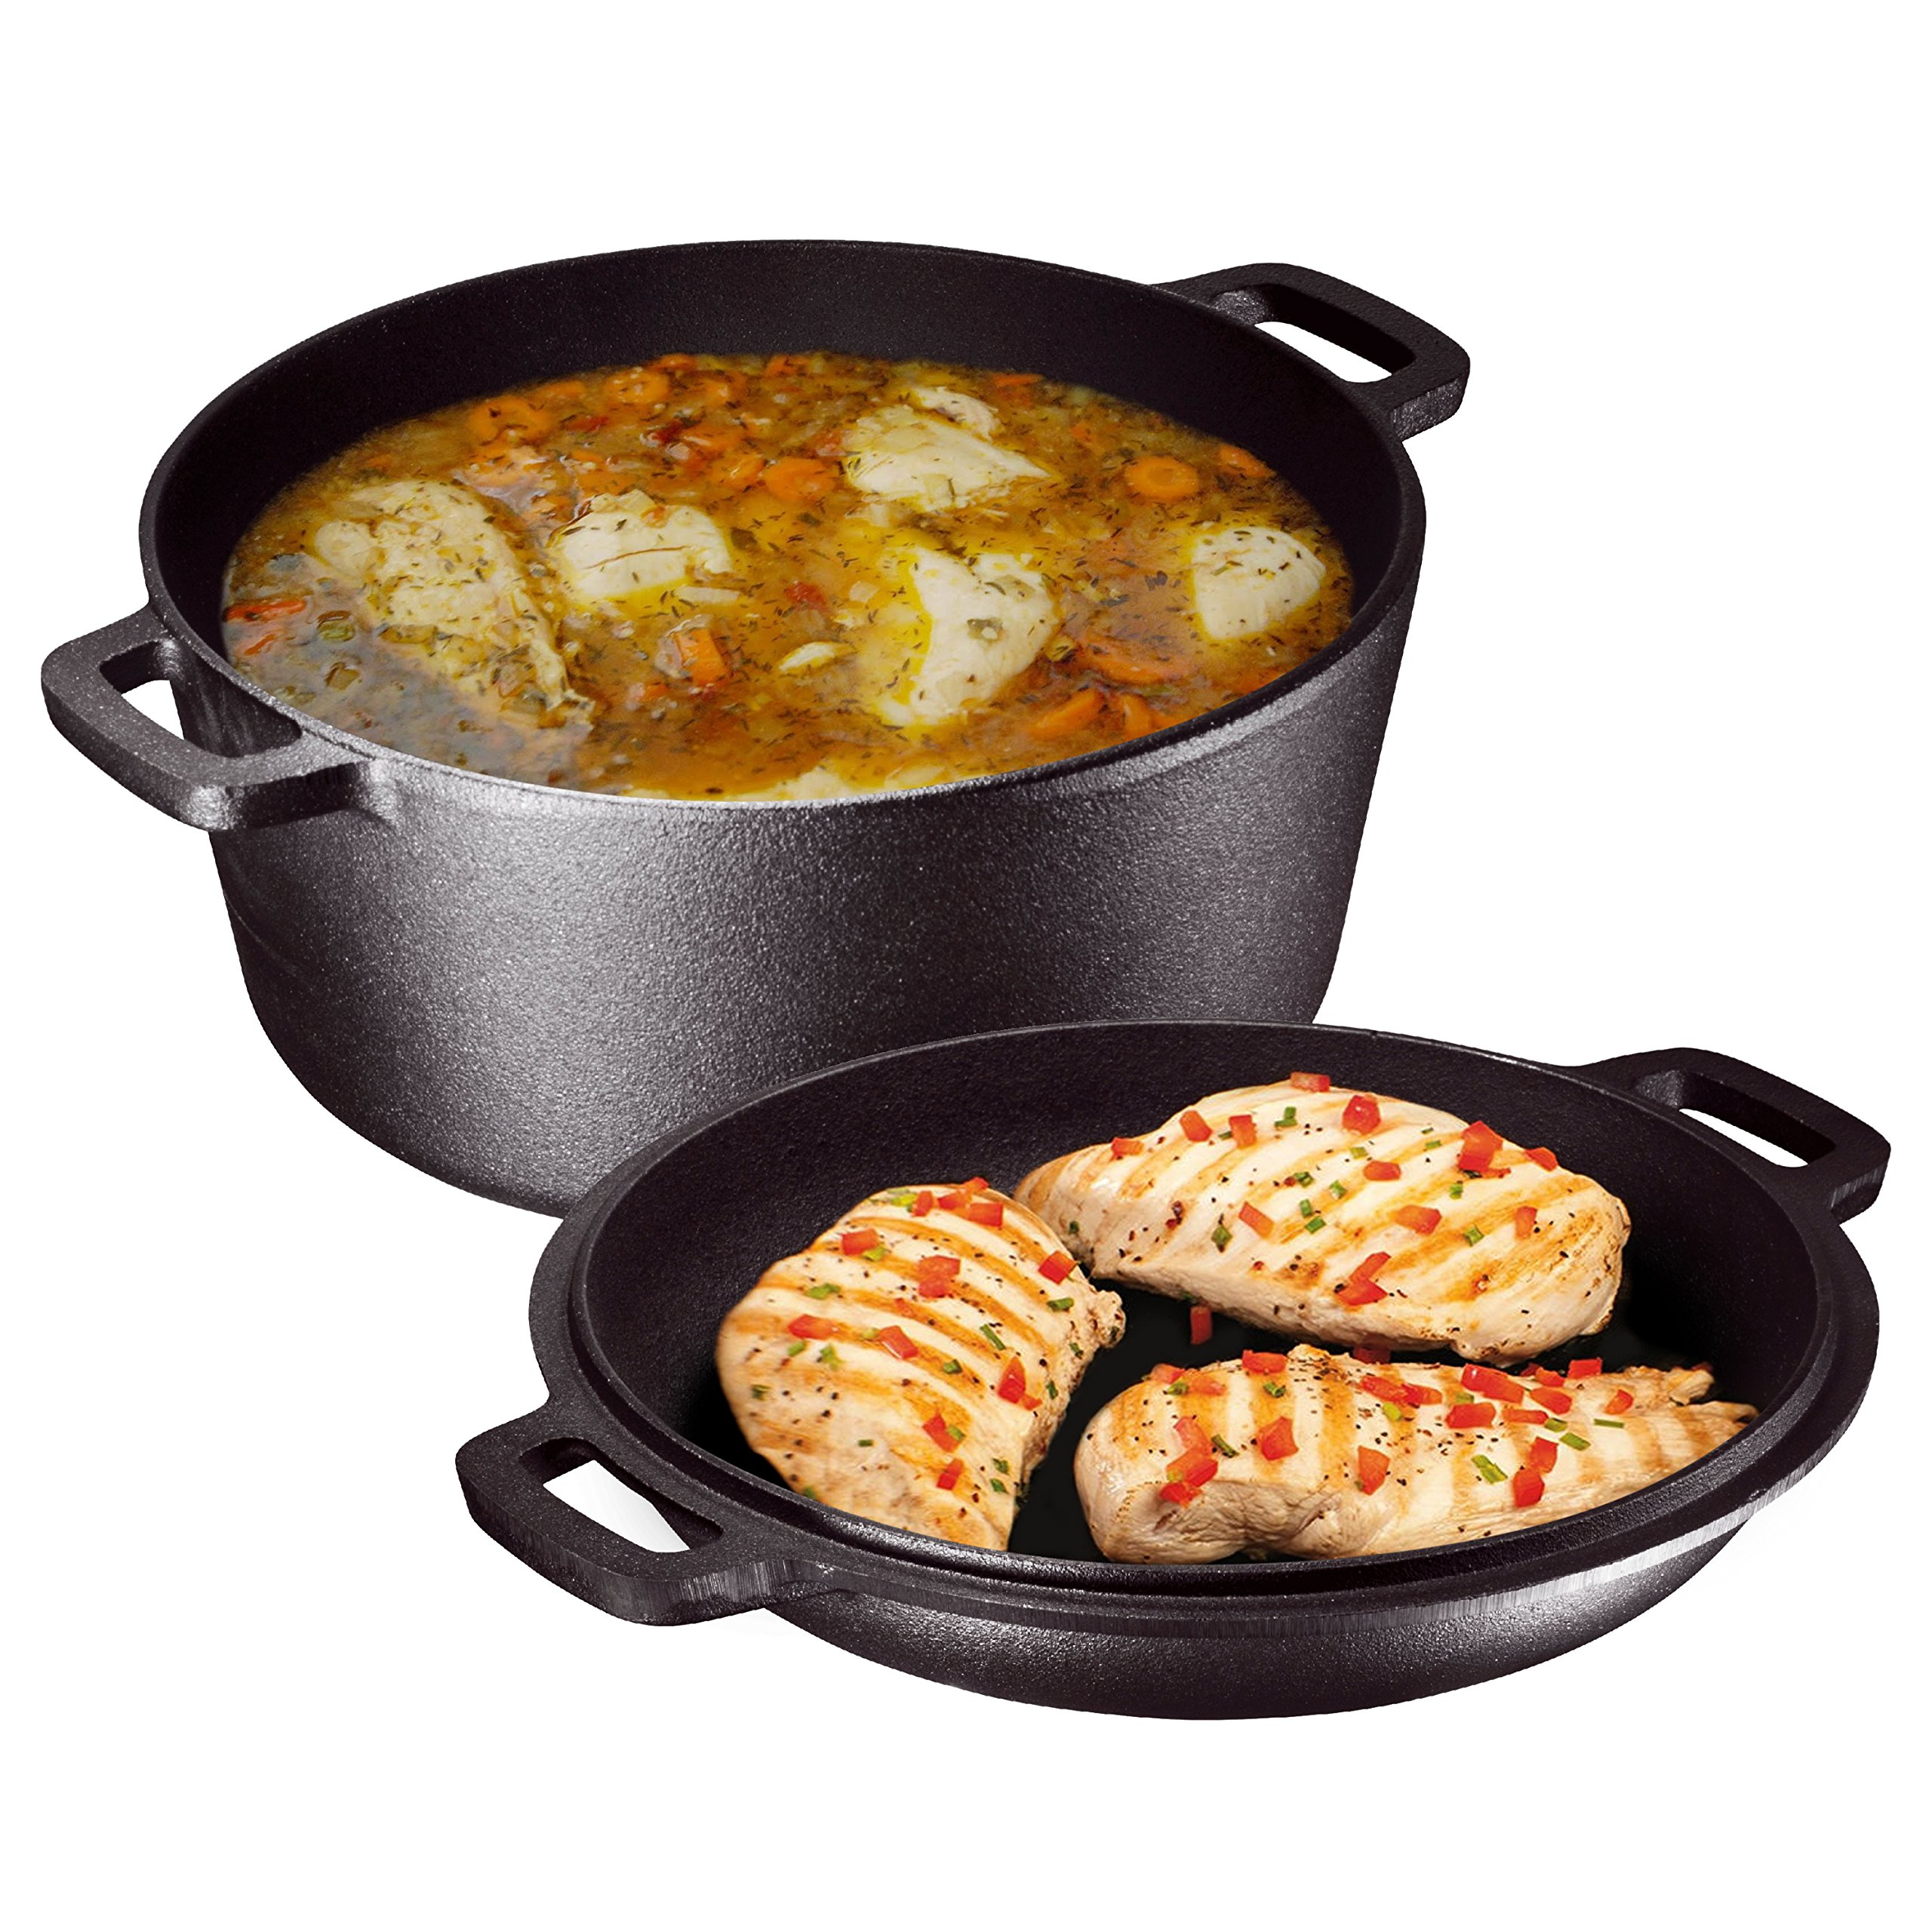 Heavy Duty Pre-Seasoned 2 In 1 Cast Iron Double Dutch Oven and Domed Skillet Lid By Bruntmor, Versatile Healthy Design, Non-Stick, 5-Quart